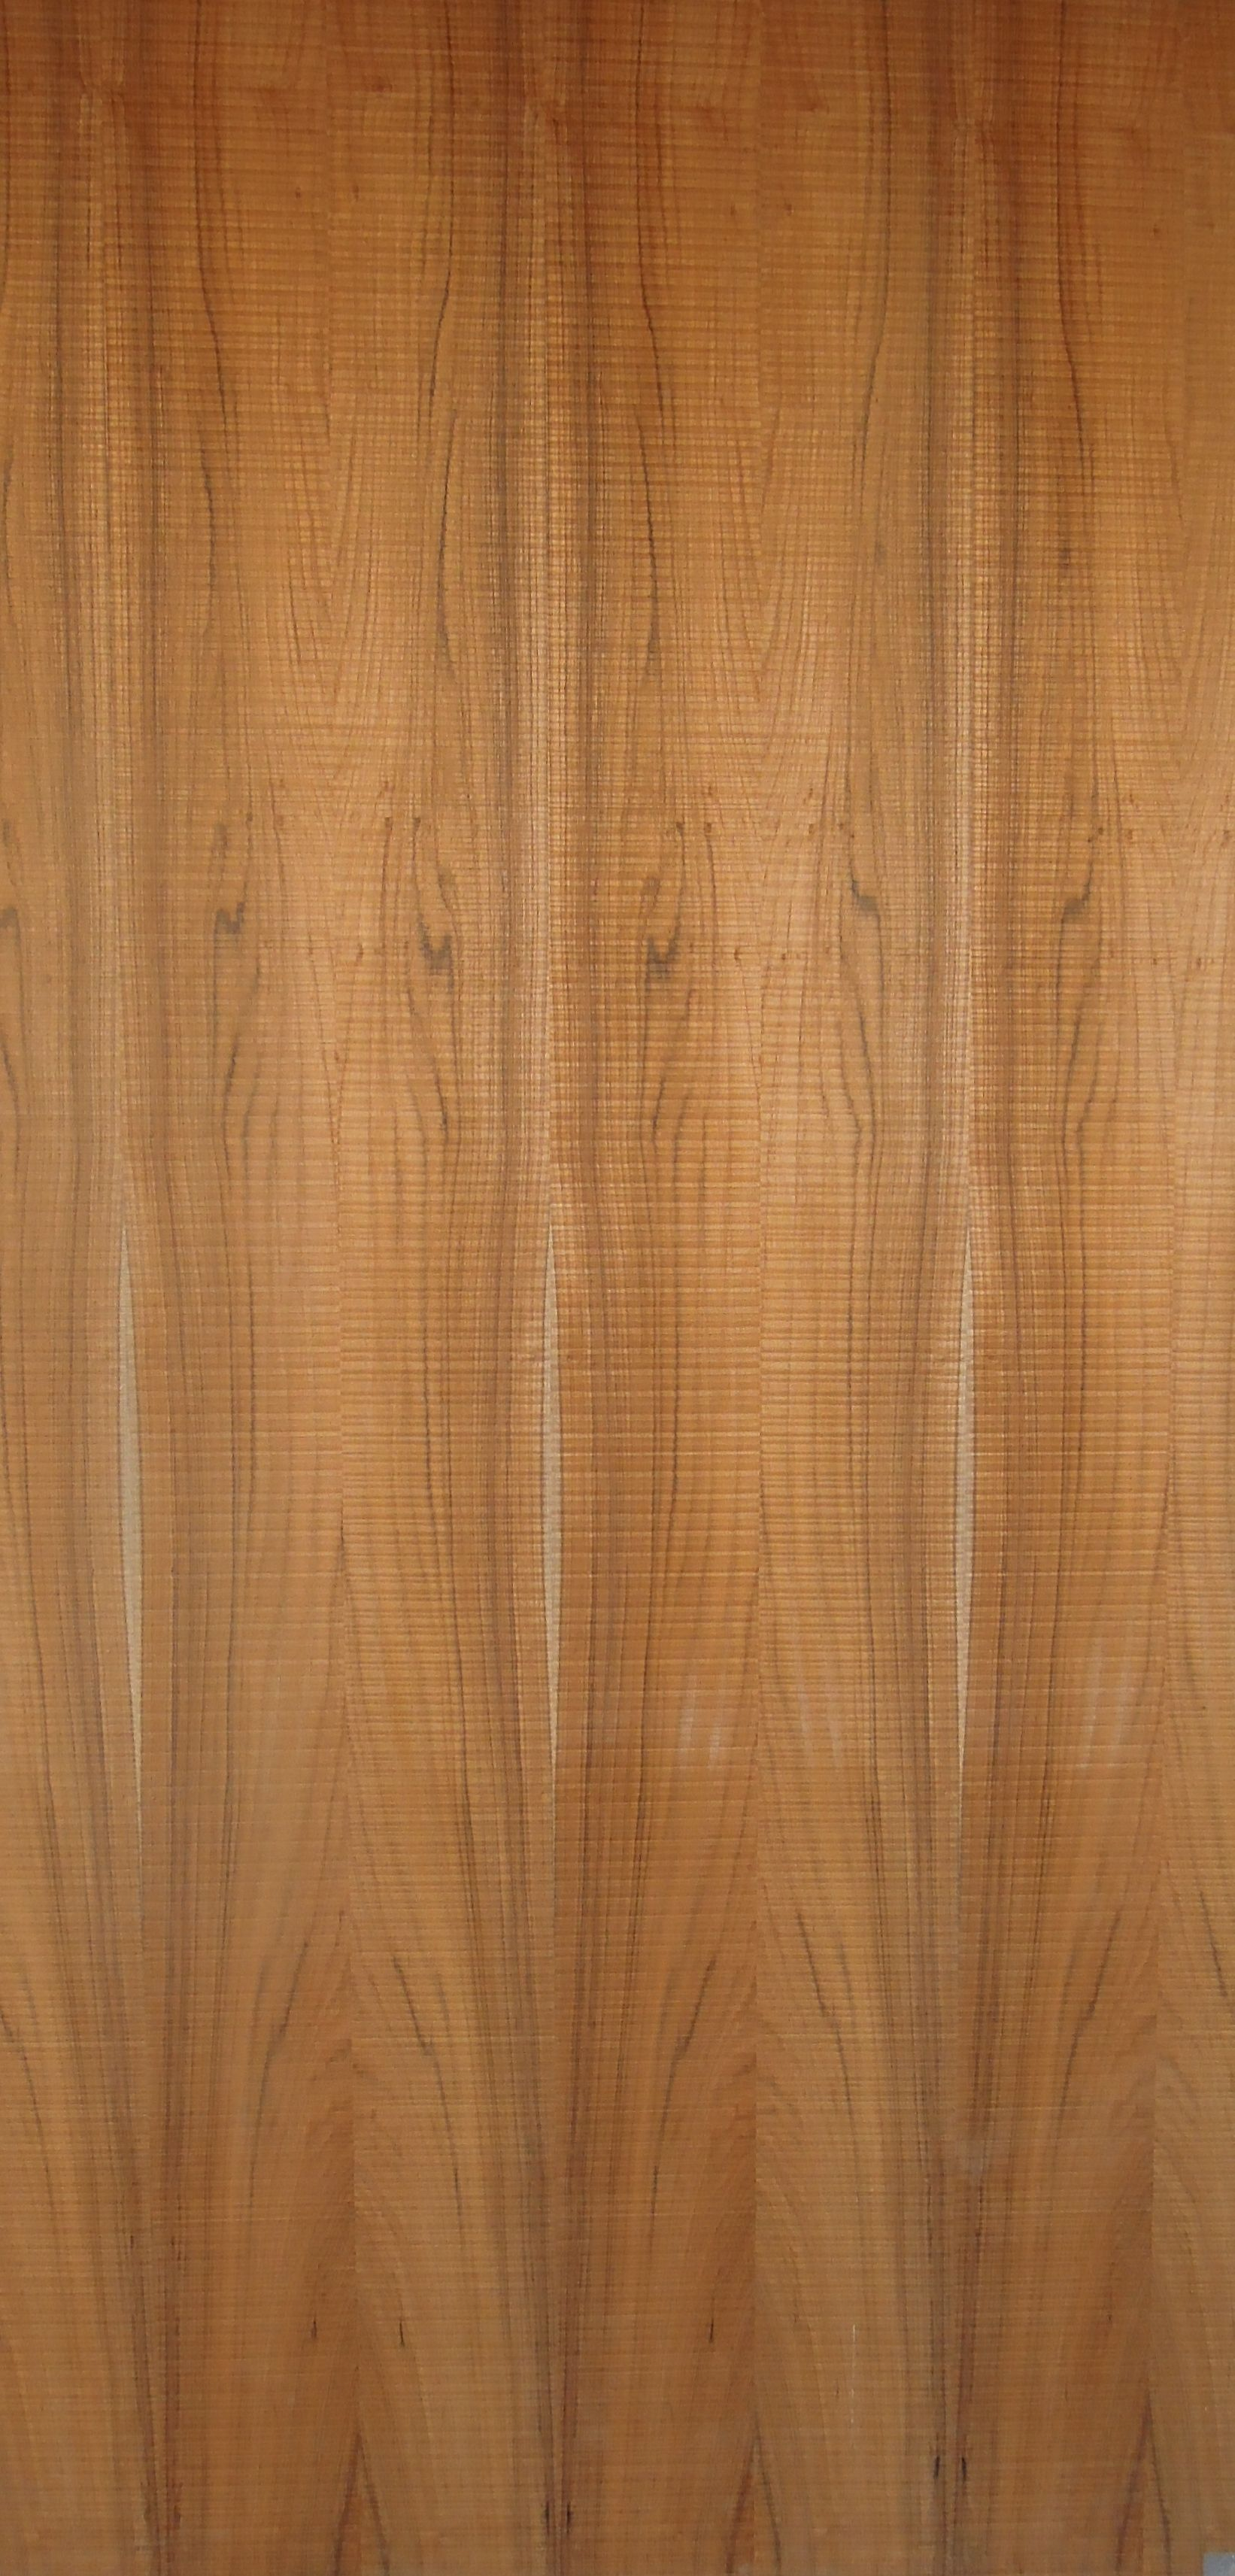 Teak Roughcut Wood Veneer Sawn Furniture Paneling Door Timberproducts Beautiful Teak Plywood Wood Laminate Wood Veneer